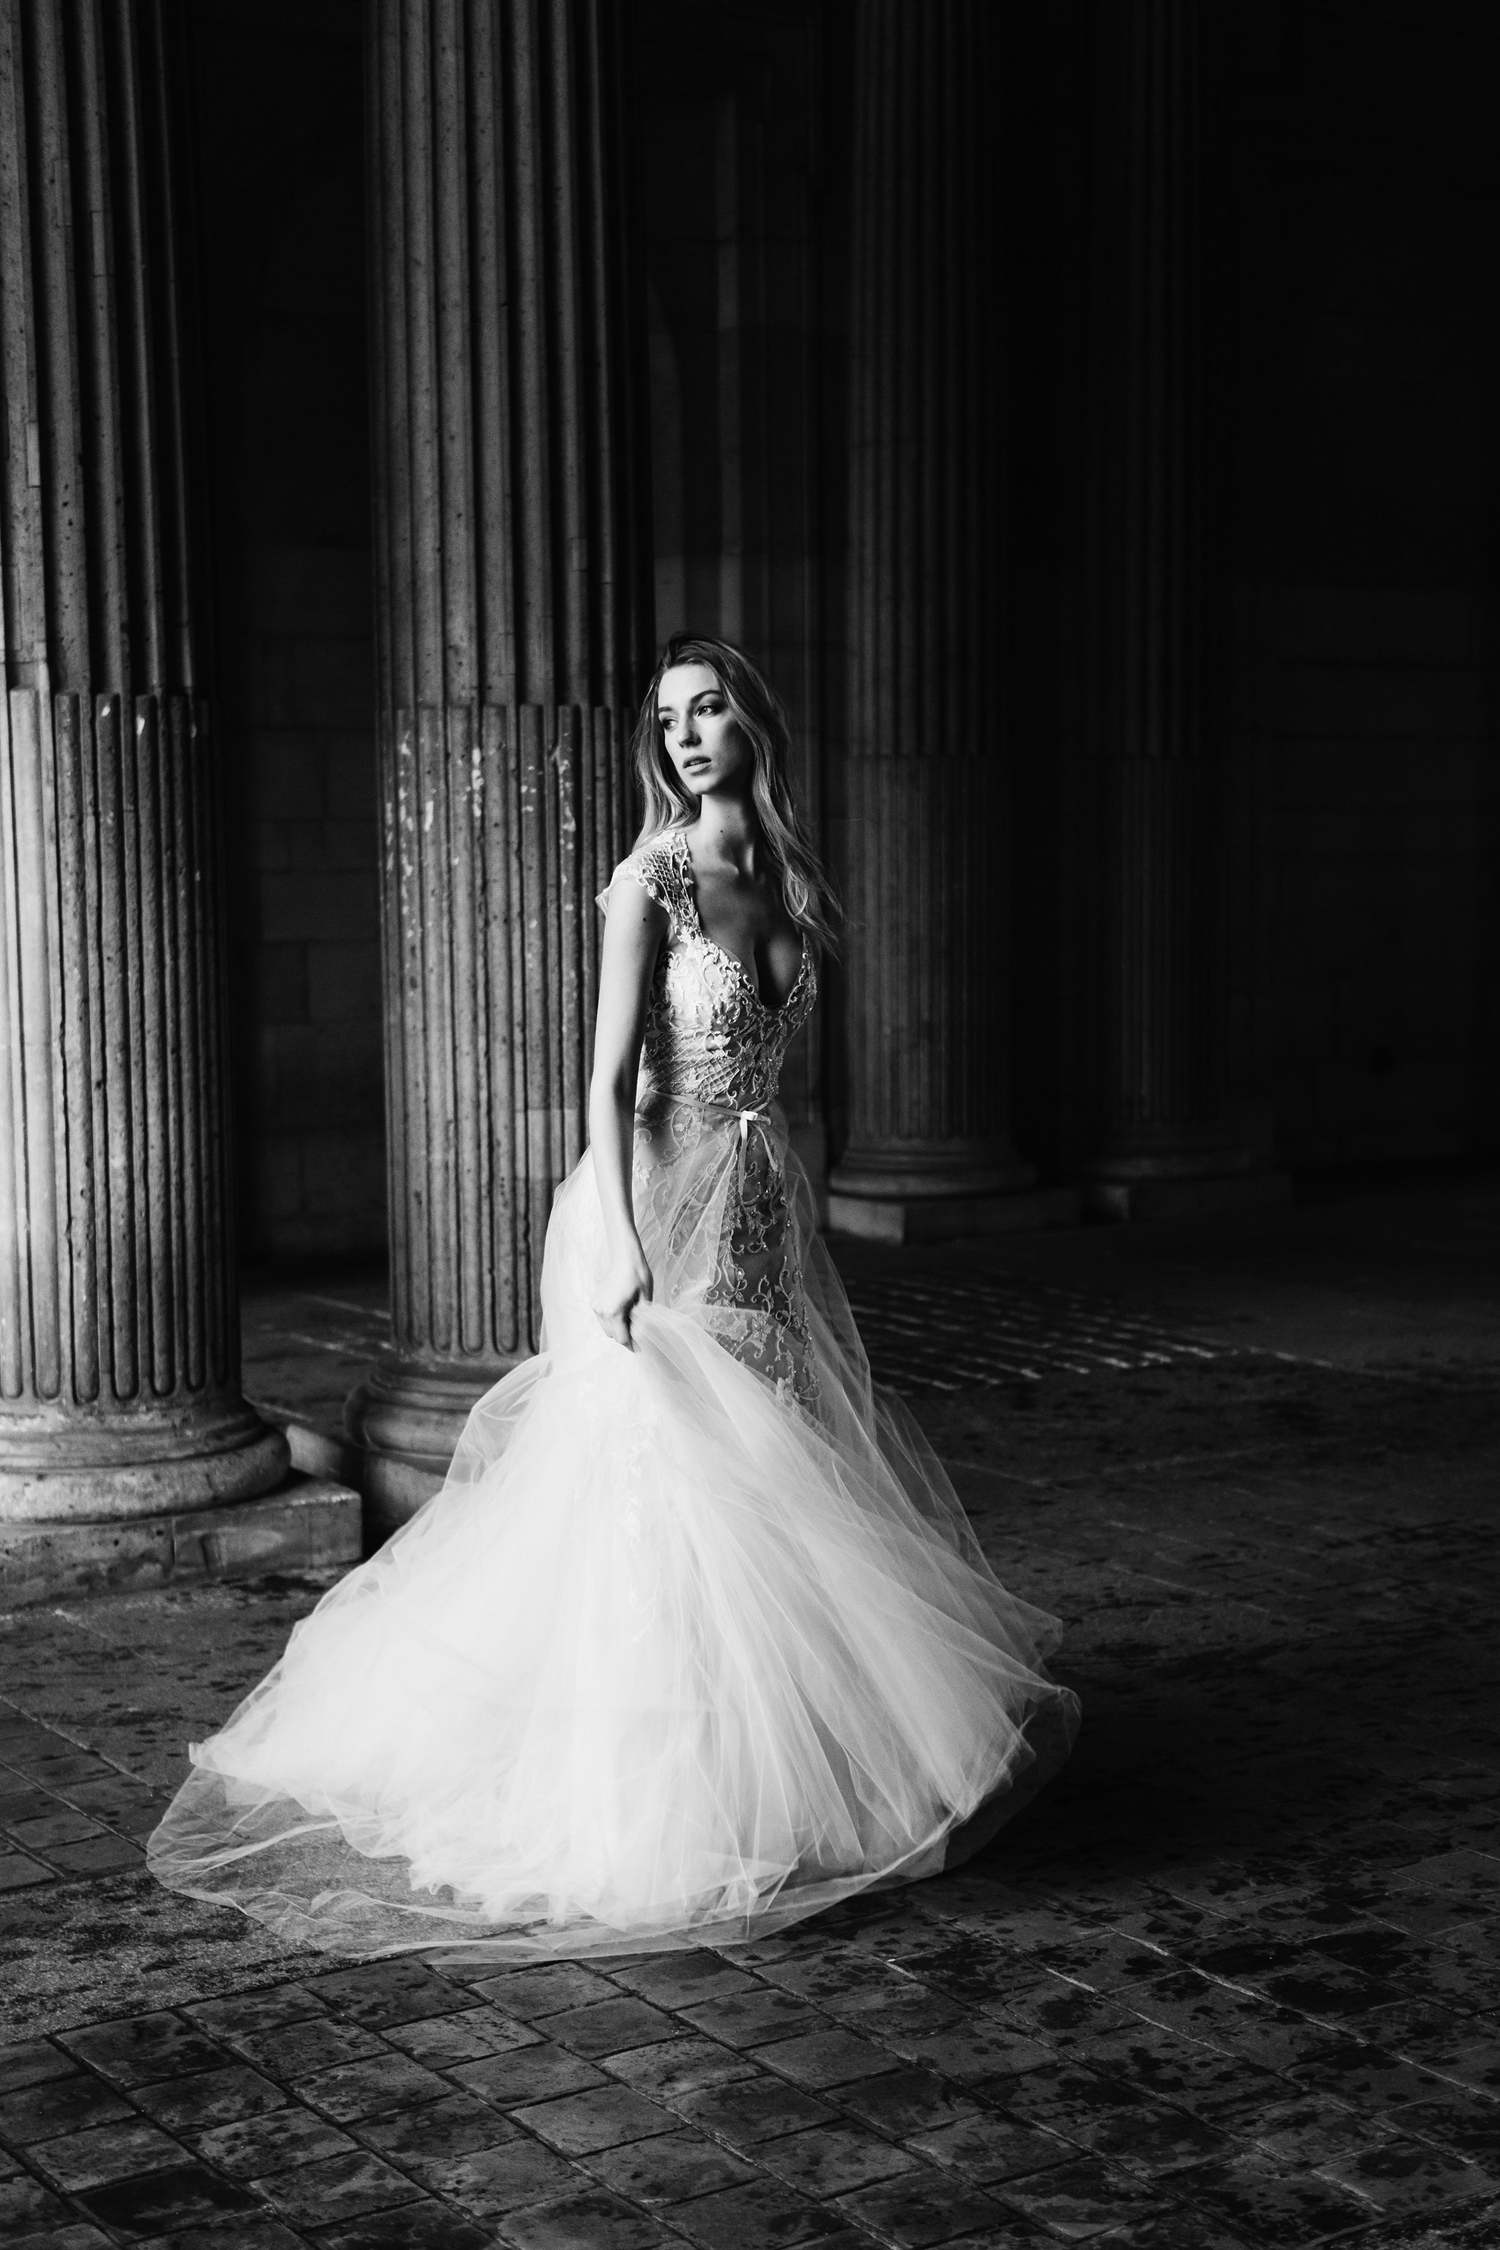 katie mitchell monique lhuillier bridal paris france wedding photographer_13.jpg